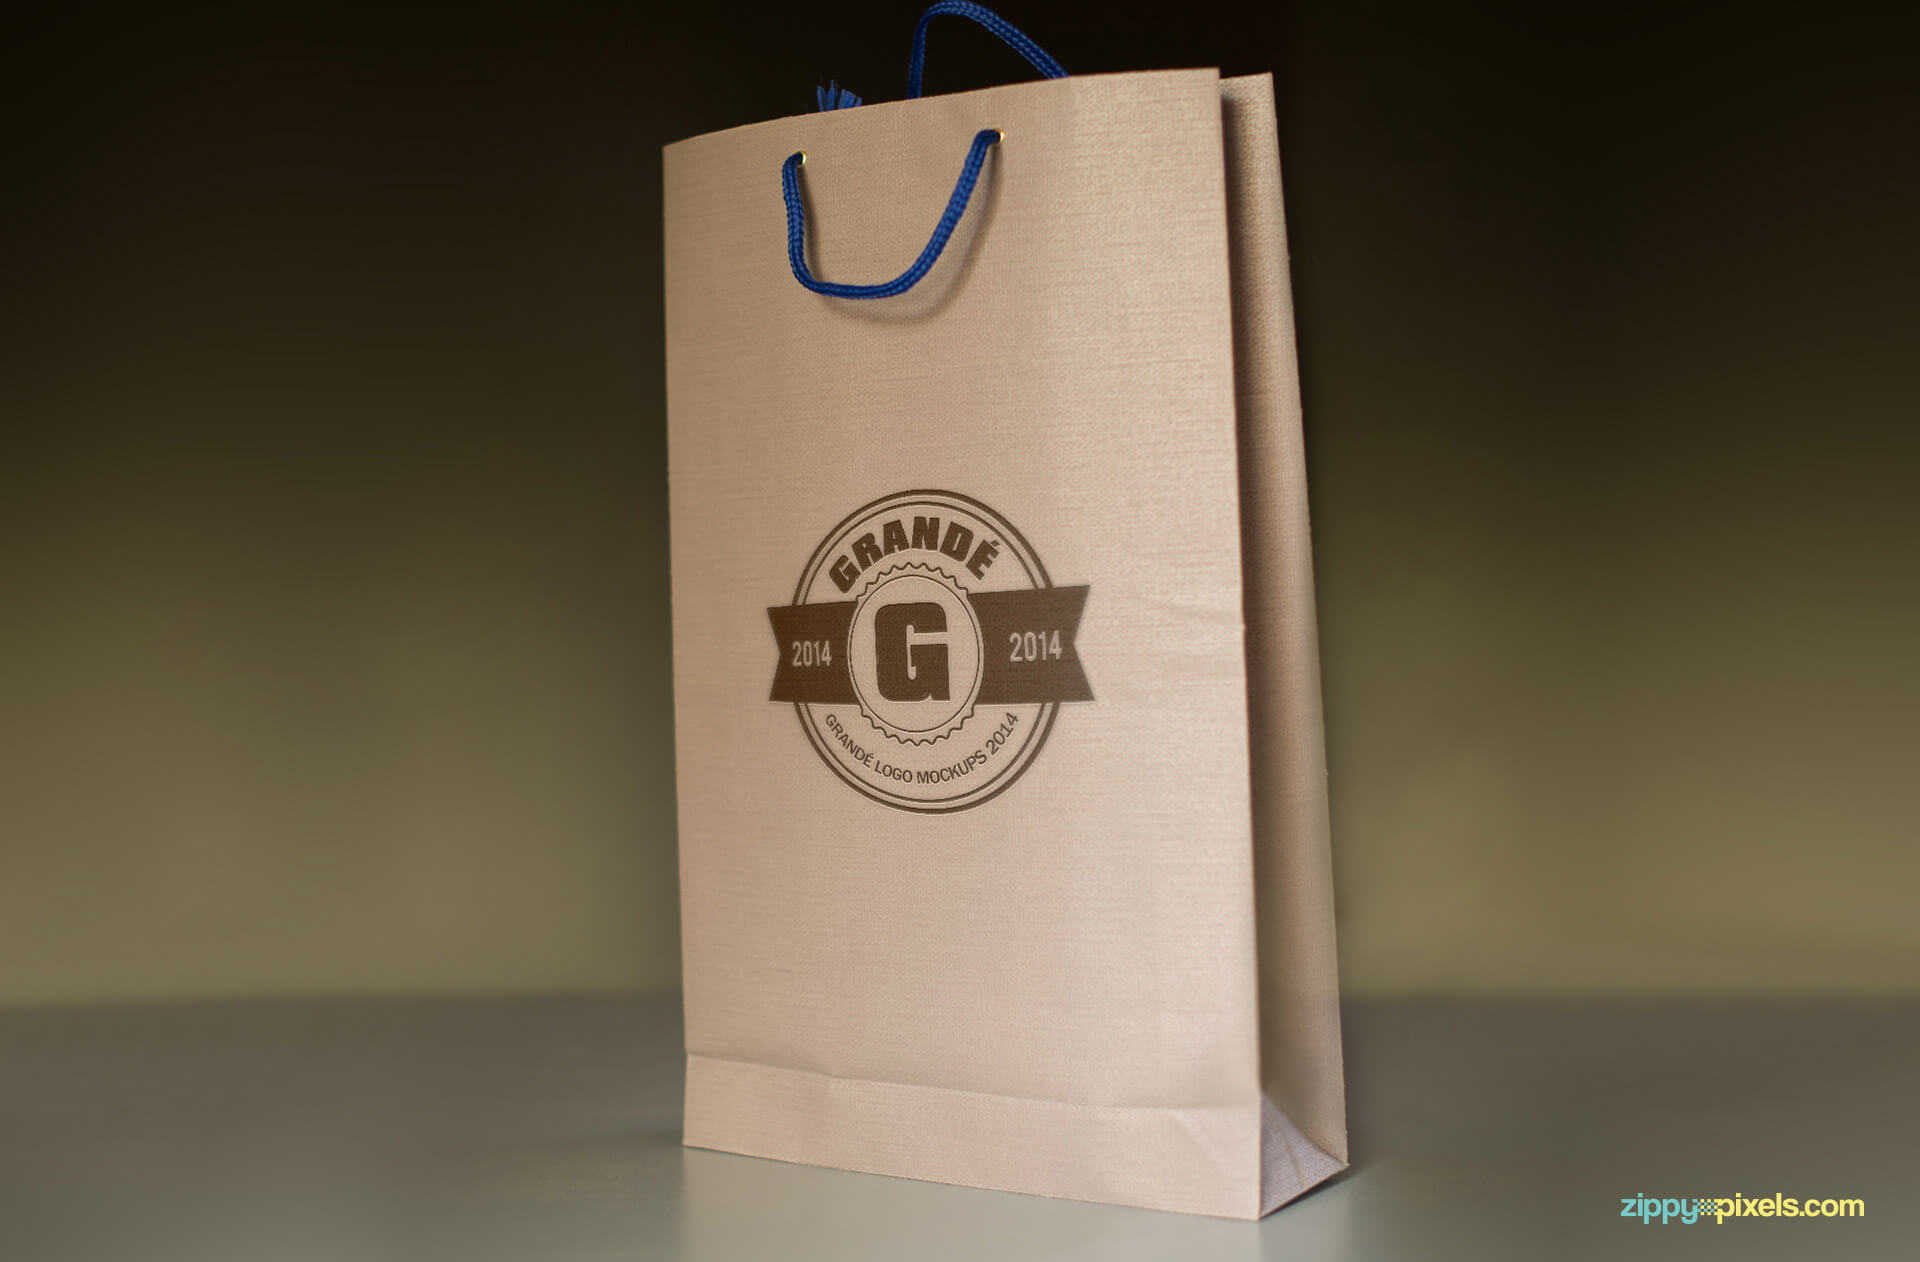 Branded Shopping Bag Mockup